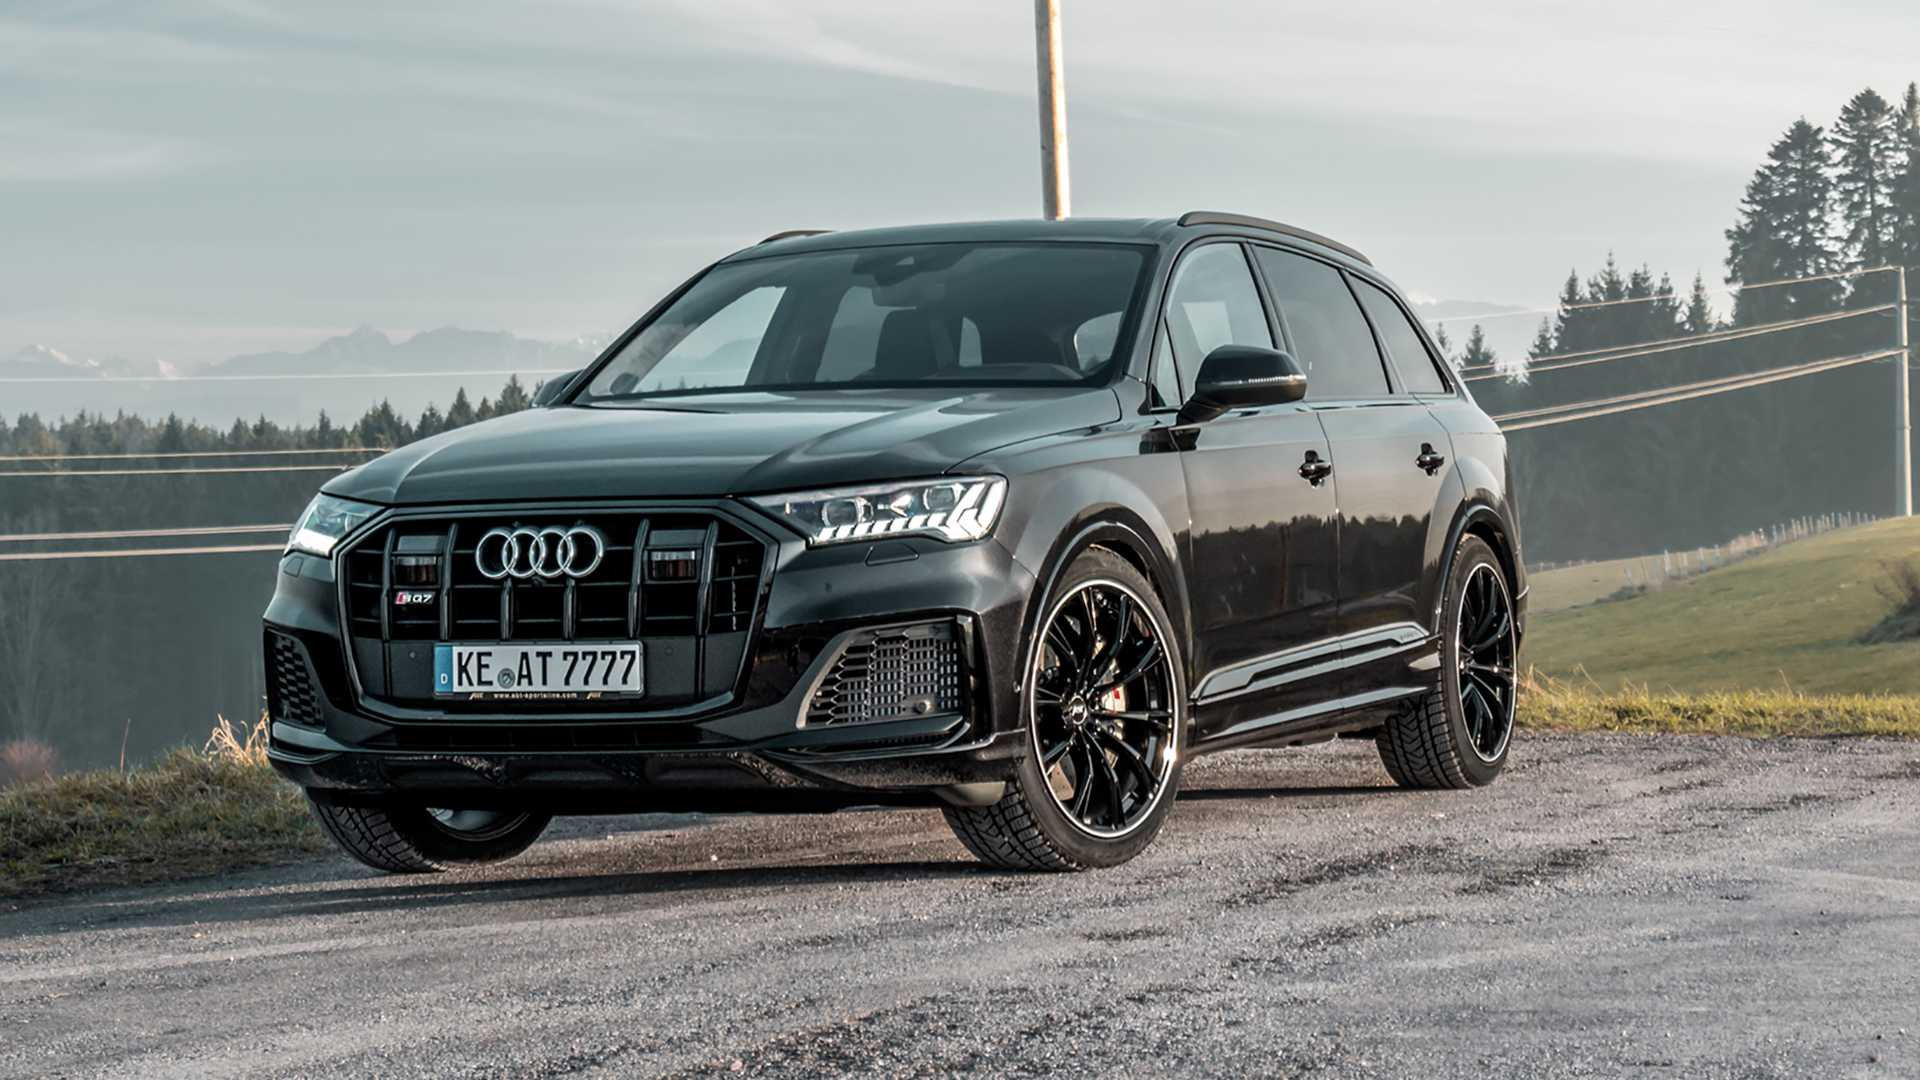 2020 Audi Sq7 Abt Tuned To 510 Ps Widebody Kit Under Development Autoevolution